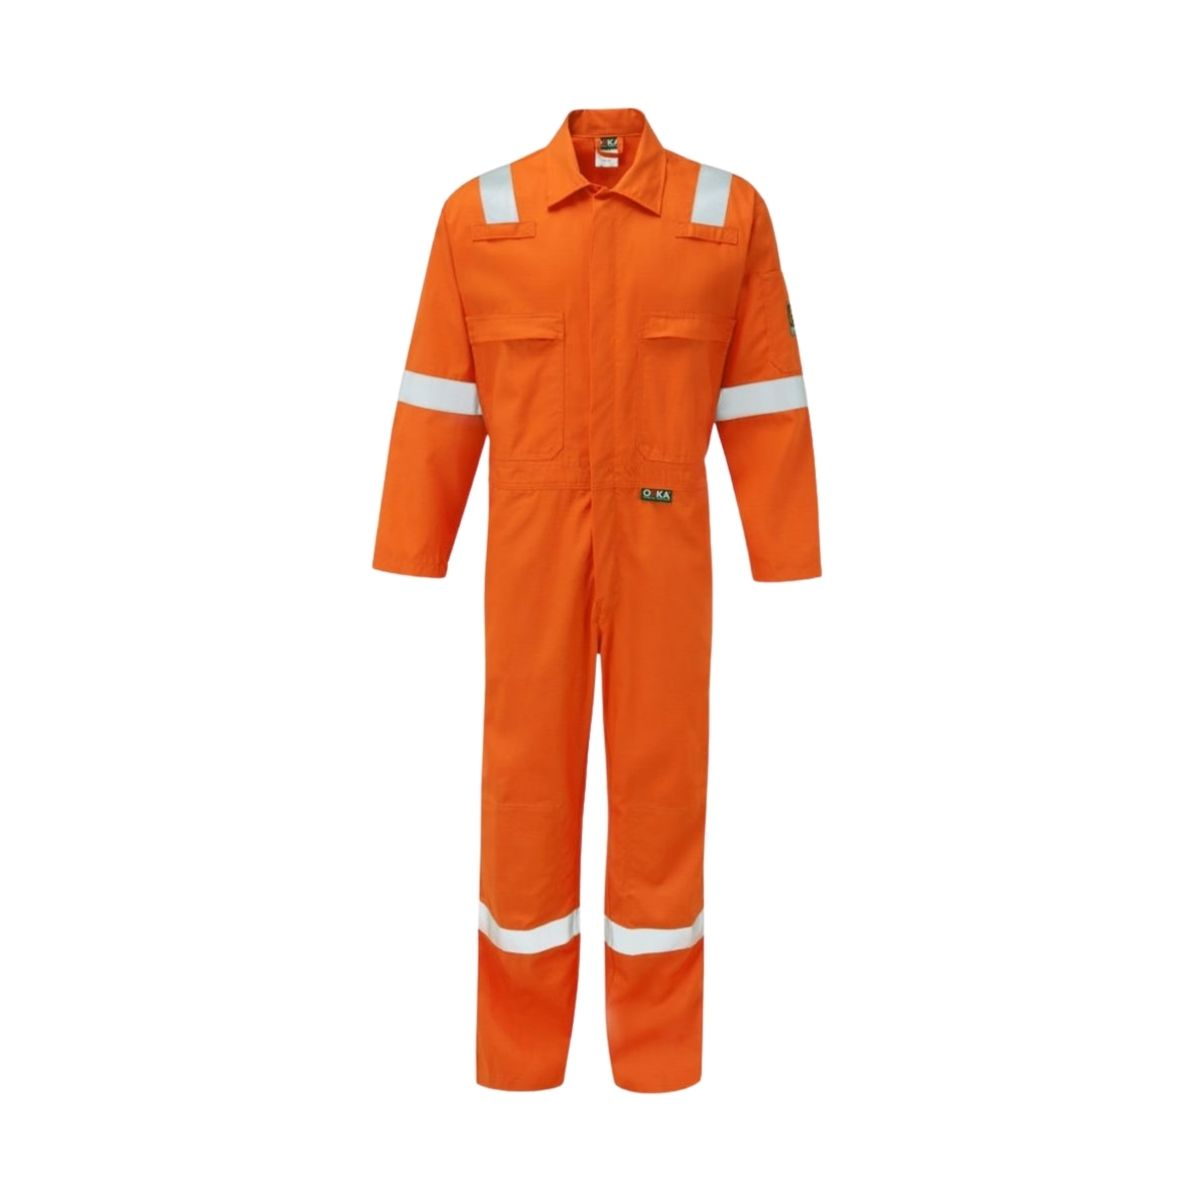 AS7335 ORKA Tropic II Lightweight FR AS Coverall - Orange